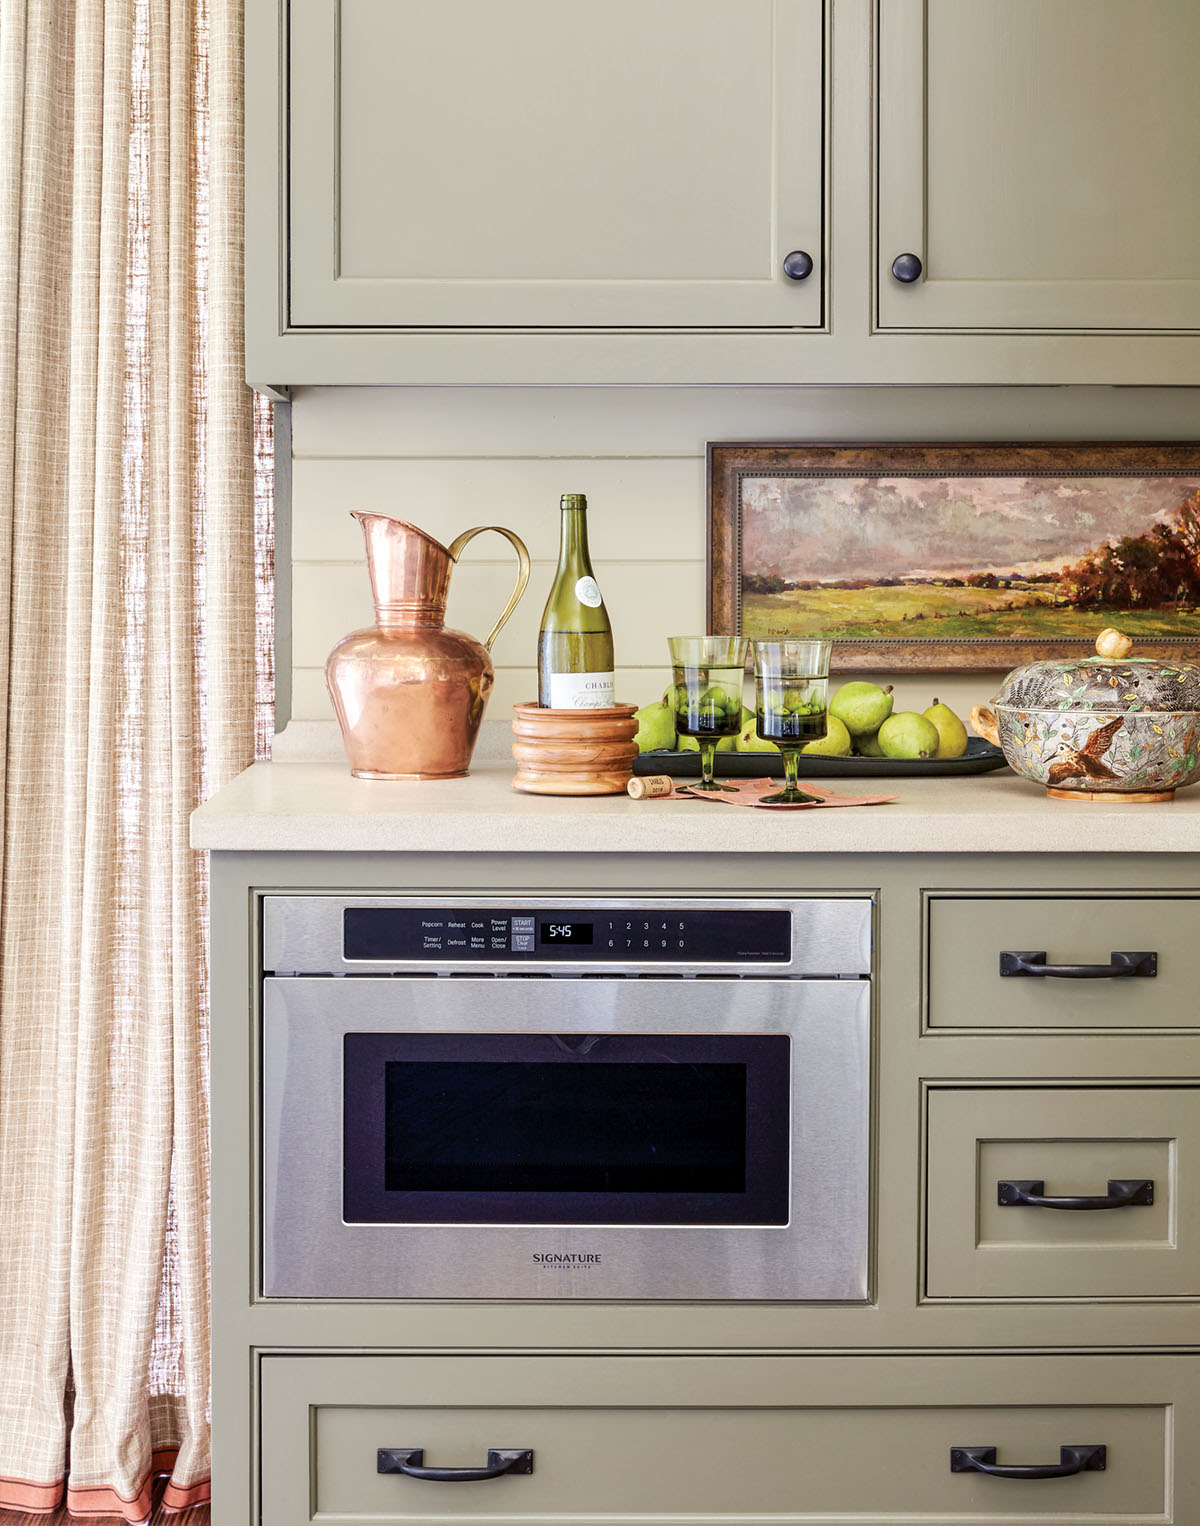 built-in microwave in lower cabinets